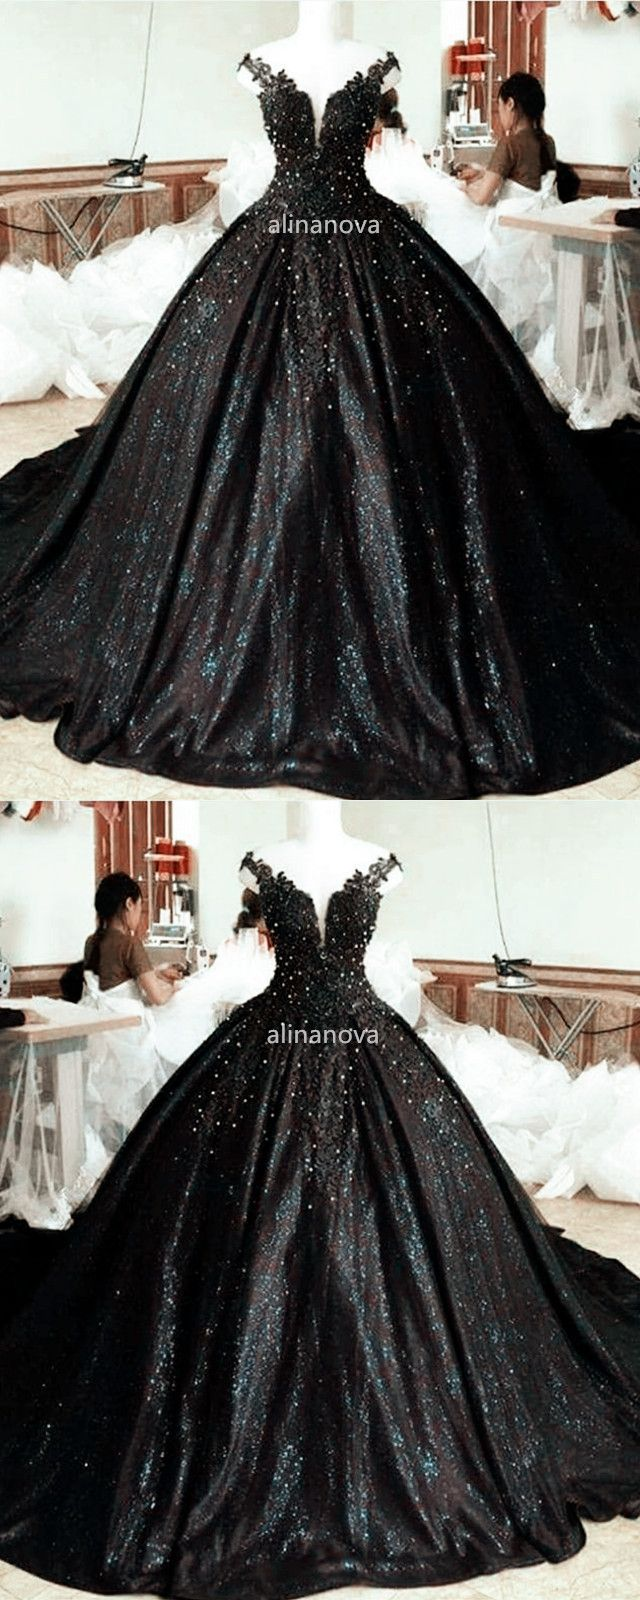 Lace Pearl Beaded V Neck Off Shoulder Ball Gowns Gowns Ball Gowns Black Ball Gown [ 1600 x 640 Pixel ]